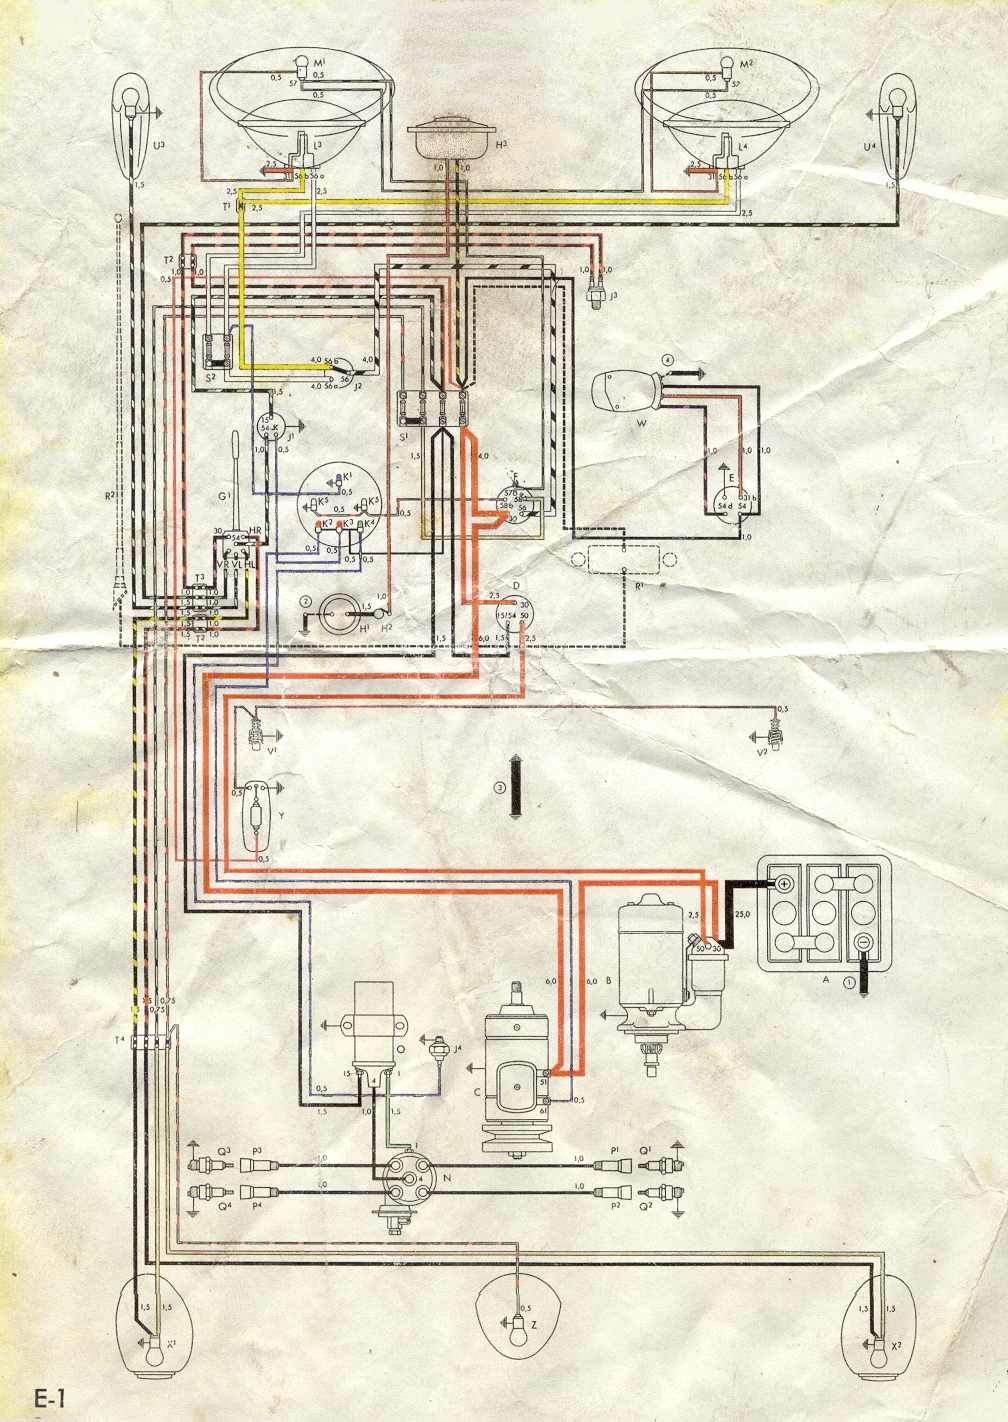 egine wireing diagram for 1959 voljswagen. Black Bedroom Furniture Sets. Home Design Ideas